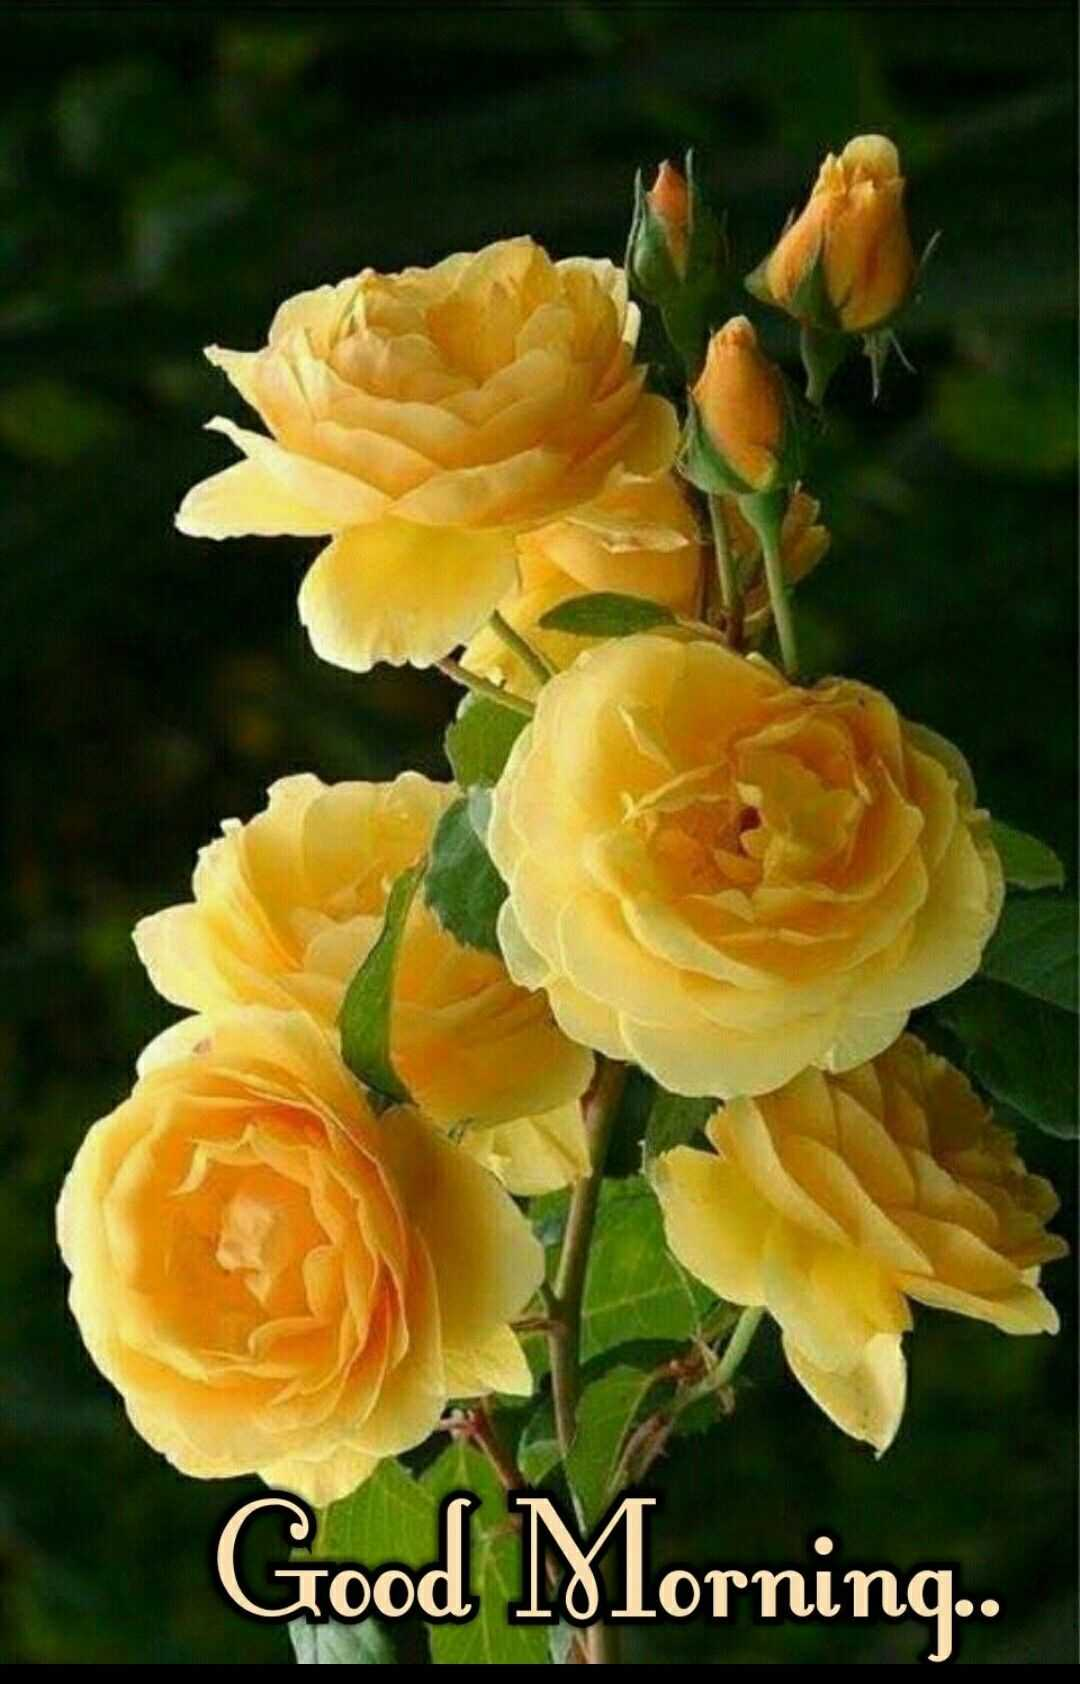 Good Morning Wishes With Yellow Hd Roses Pictures Photosbin